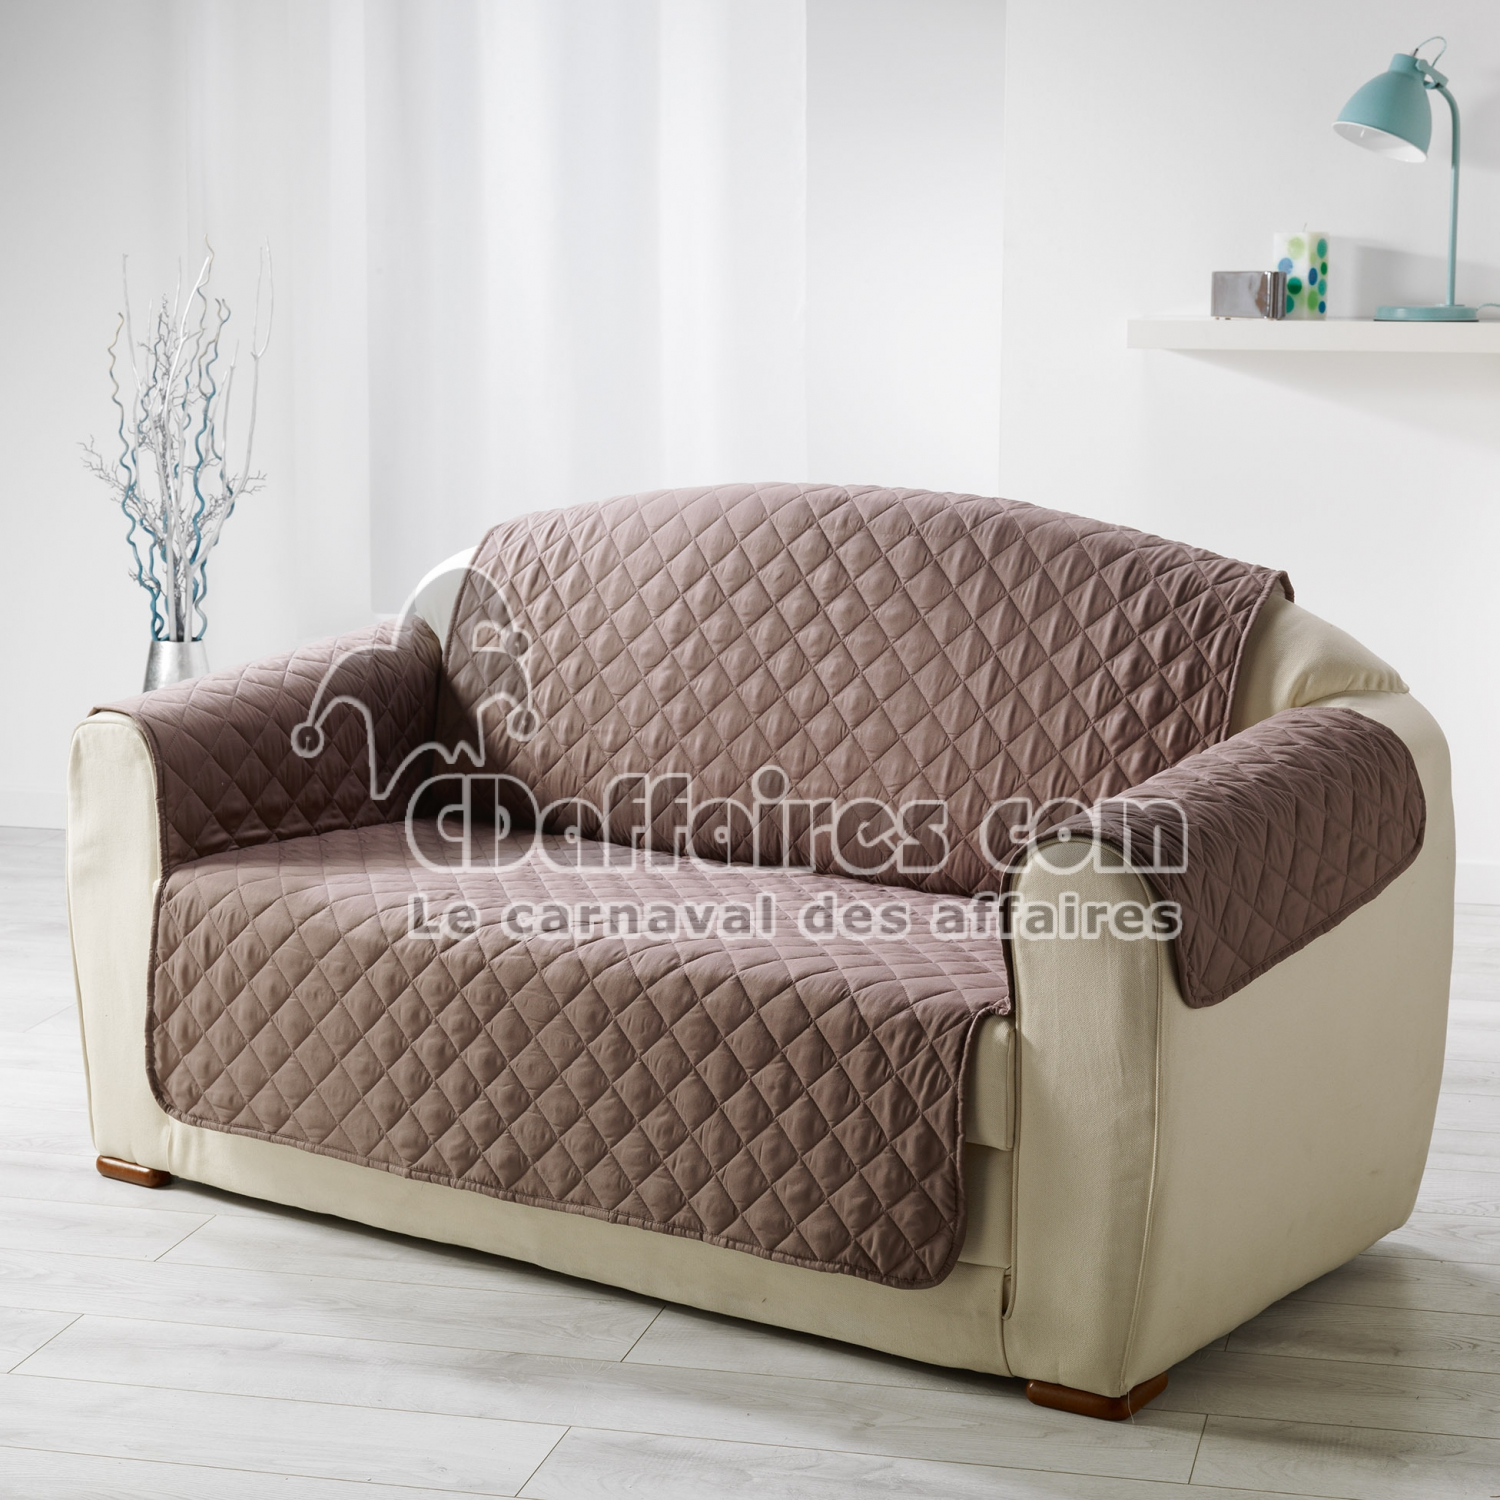 protege canape matelasse 223 x 179 cm microfibre unie club noisette cdaffaires. Black Bedroom Furniture Sets. Home Design Ideas